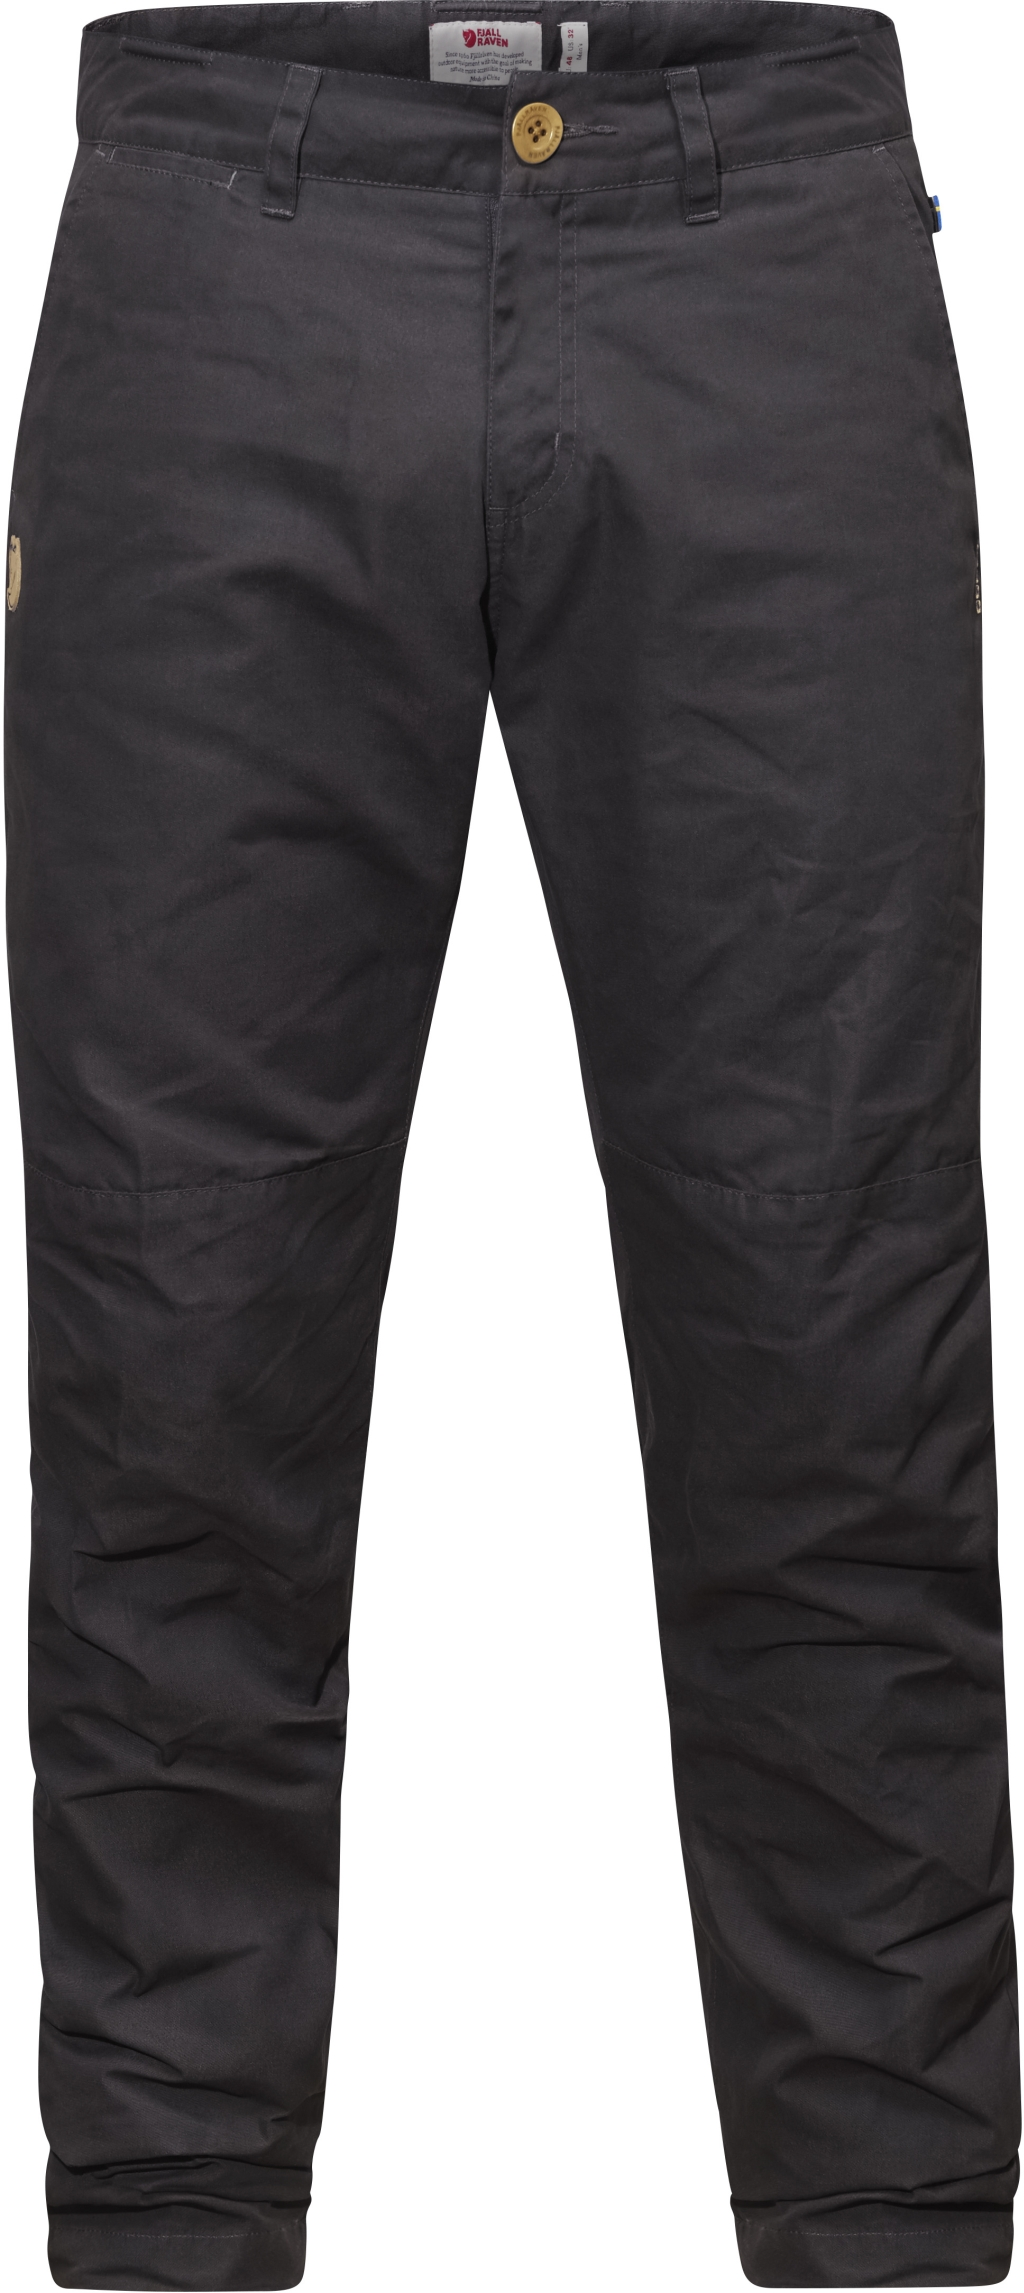 FjallRaven Barents Pro Winter Jeans Dark Grey-30